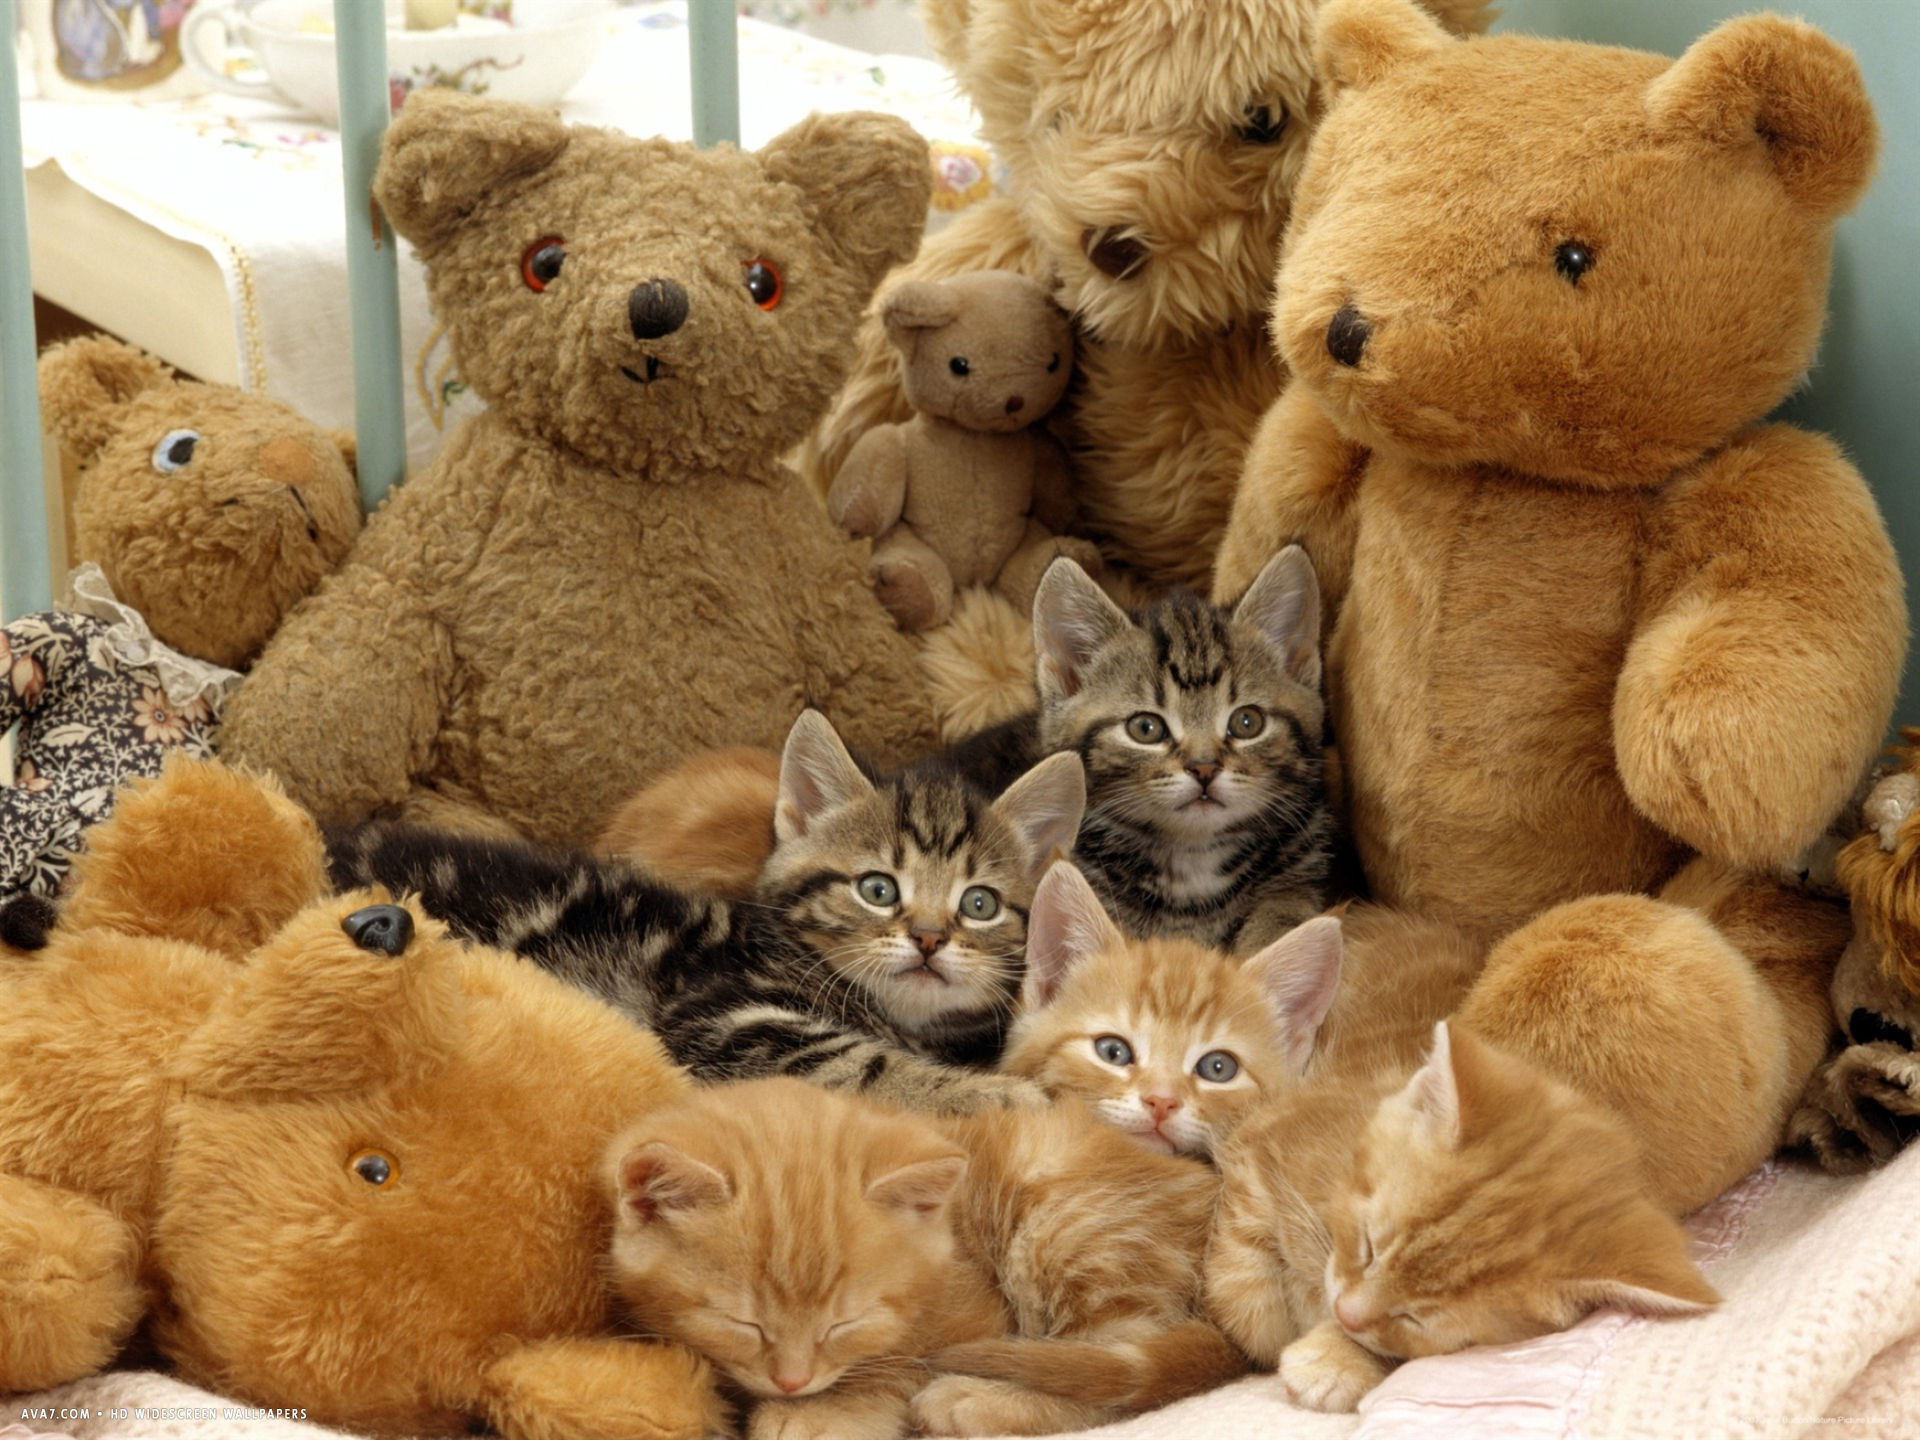 five kittens in cot with teddy bears